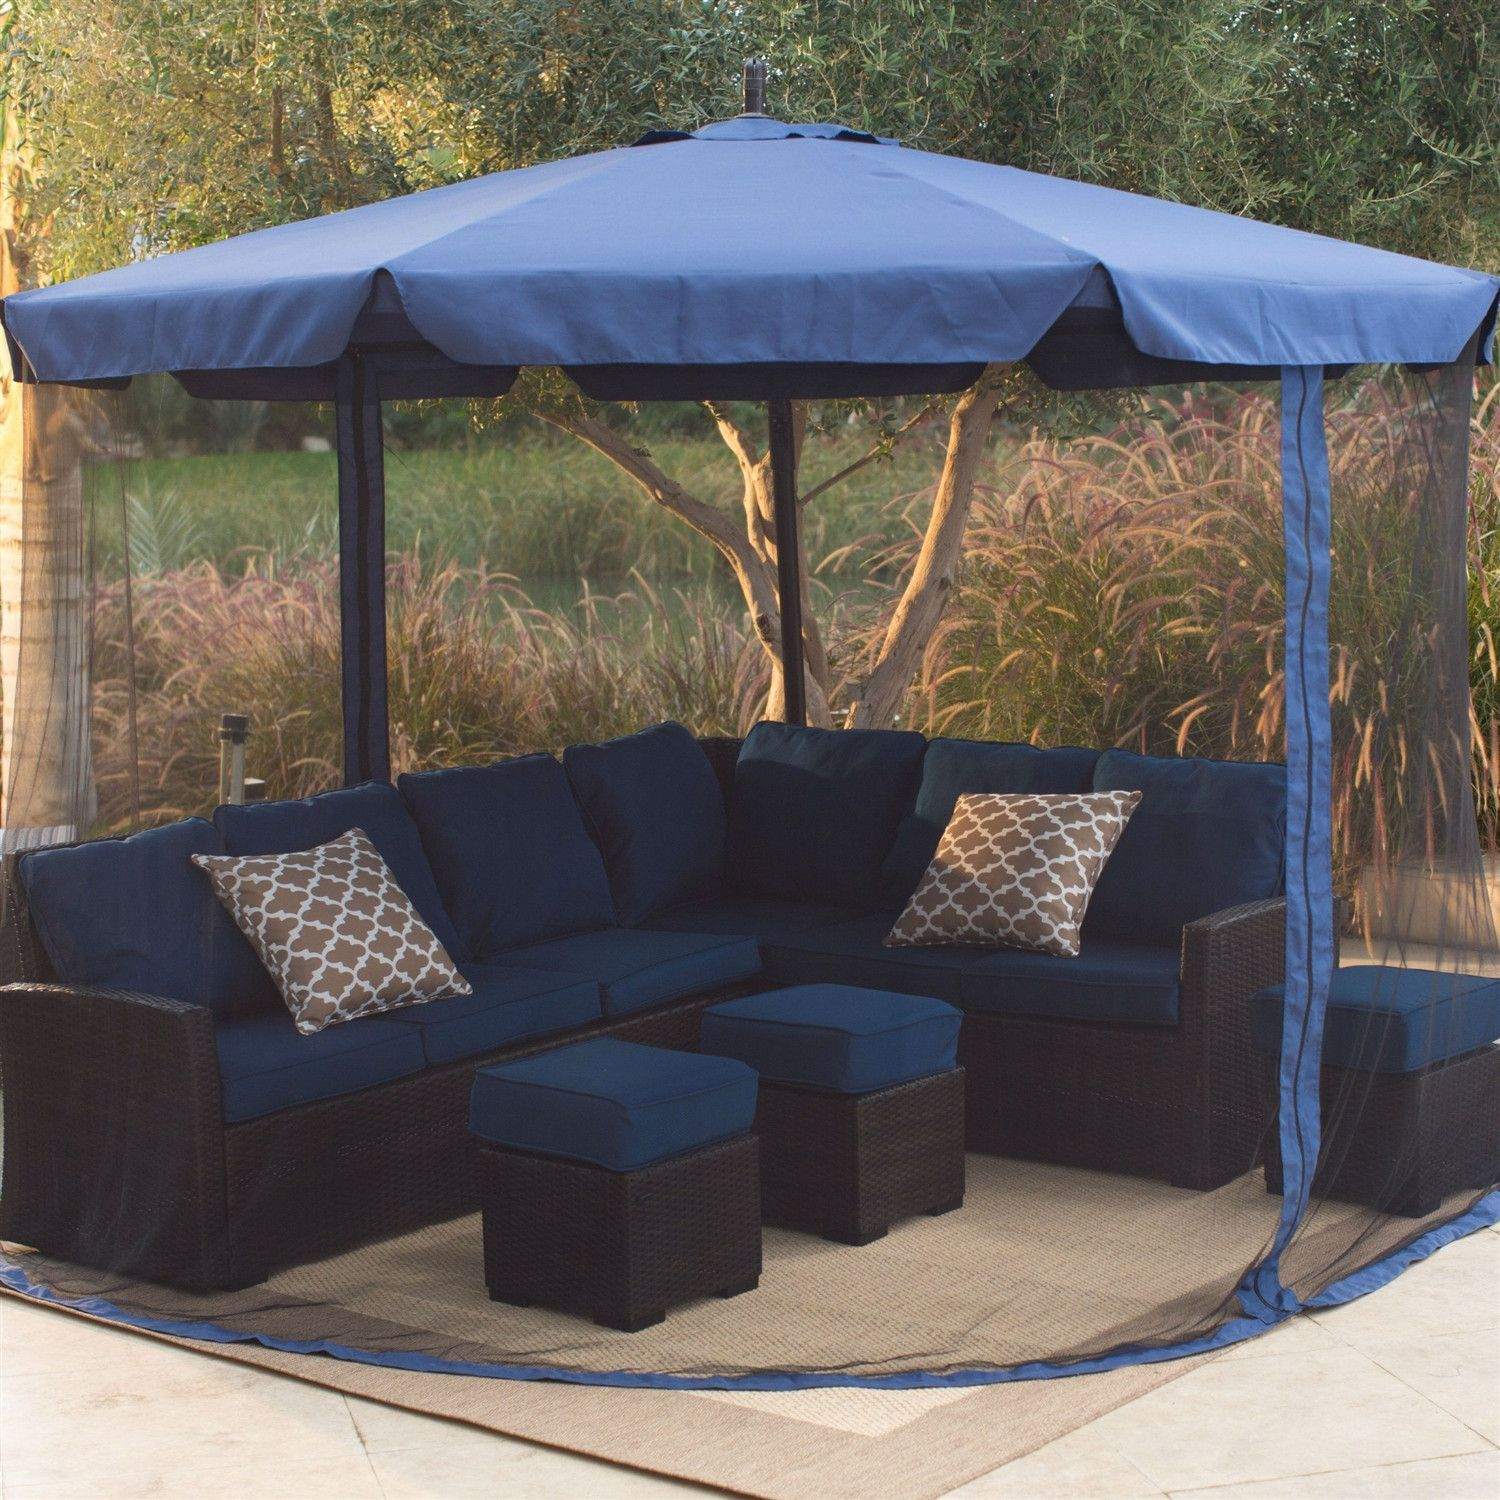 11Ft Cantilever Crank Lift Patio Umbrella In Blue With Removable Netting